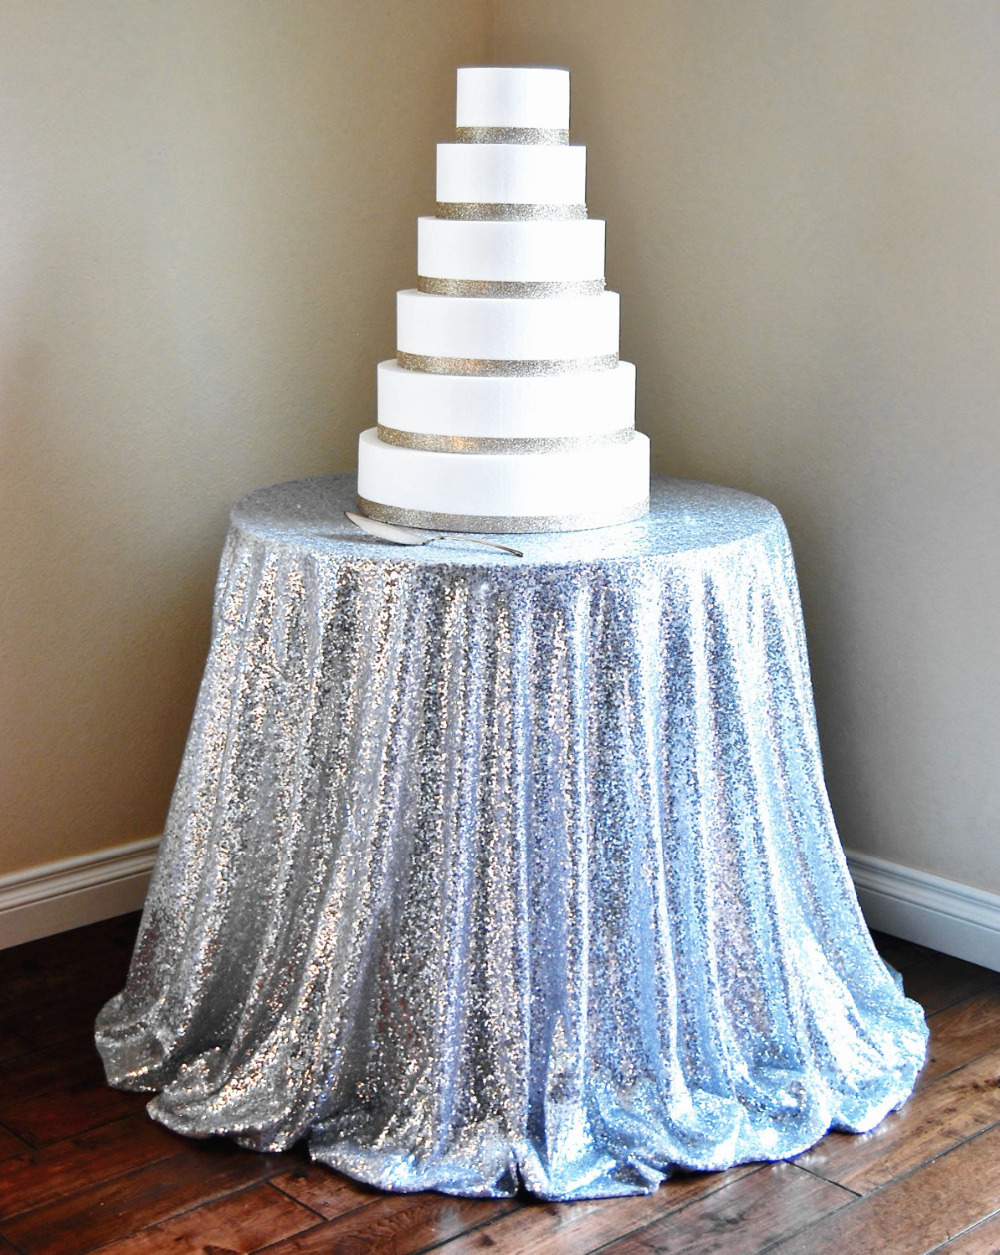 48 inch round silver sequin tablecloth wedding beautiful silver sequin table cloth overlay cover